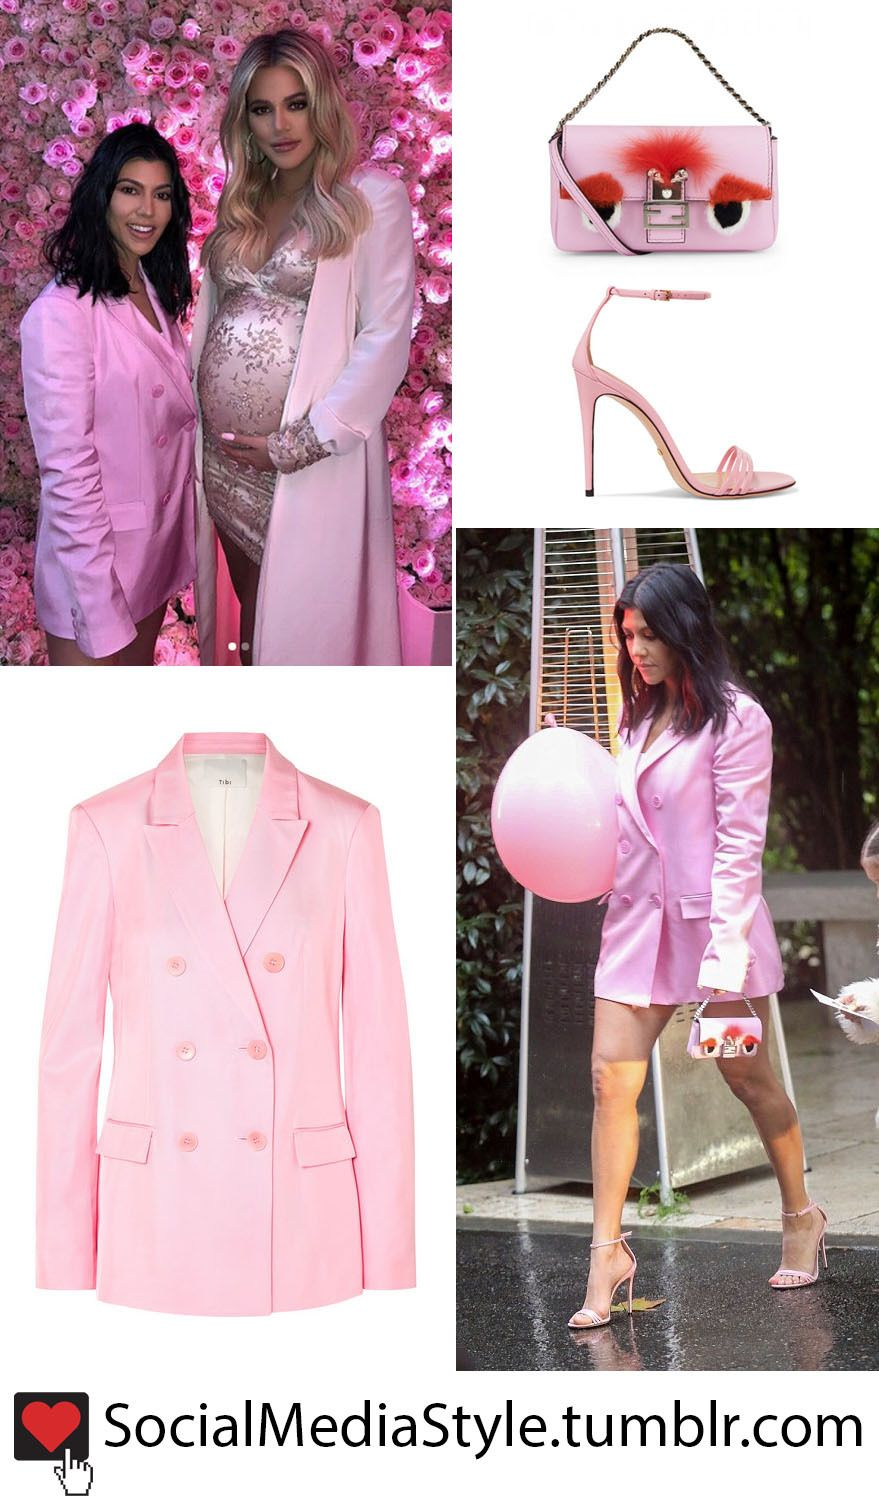 300c94da7c43 Buy Kourtney Kardashian's Pink Blazer Dress, Monster Bag, and Strappy  Sandals from Khloe's Baby Shower, here!